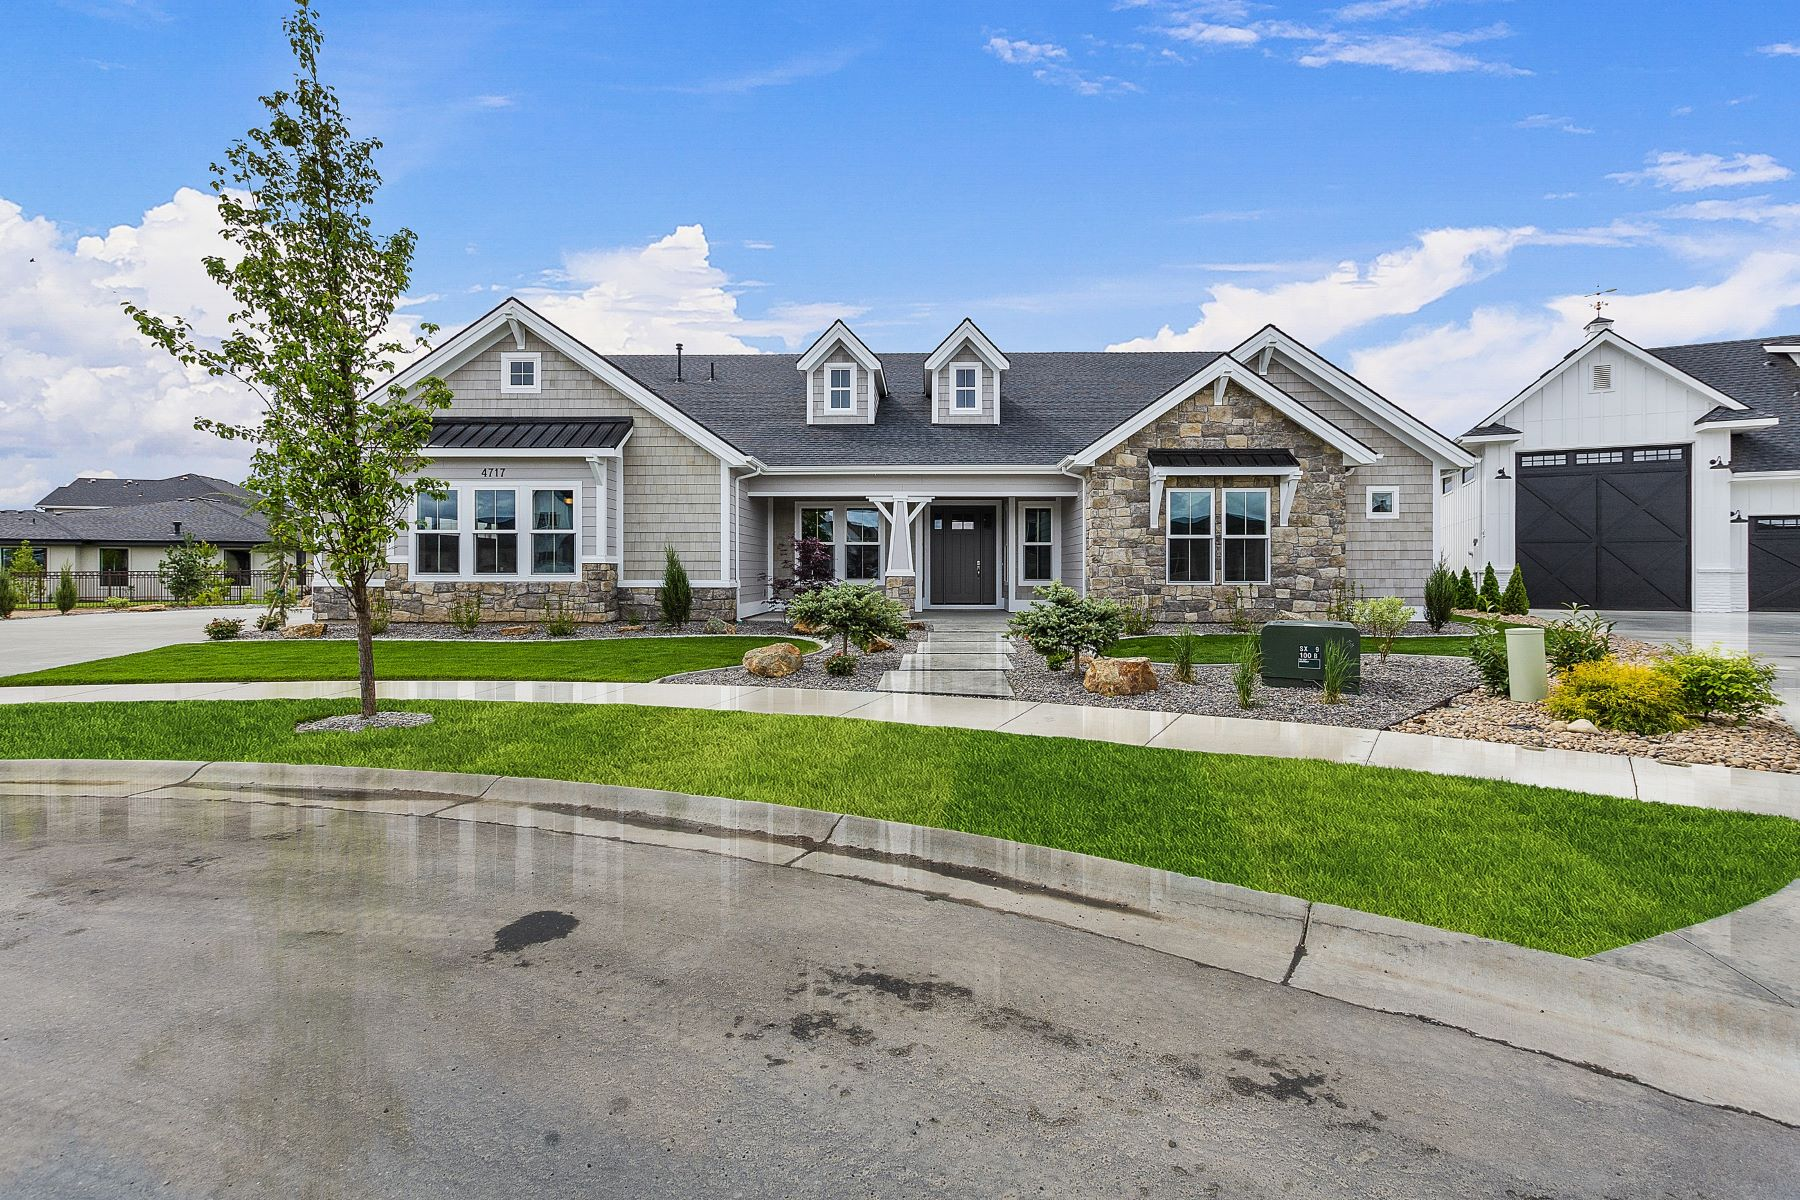 Single Family Homes for Sale at 4717 Salix Court Meridian, Idaho 83646 United States